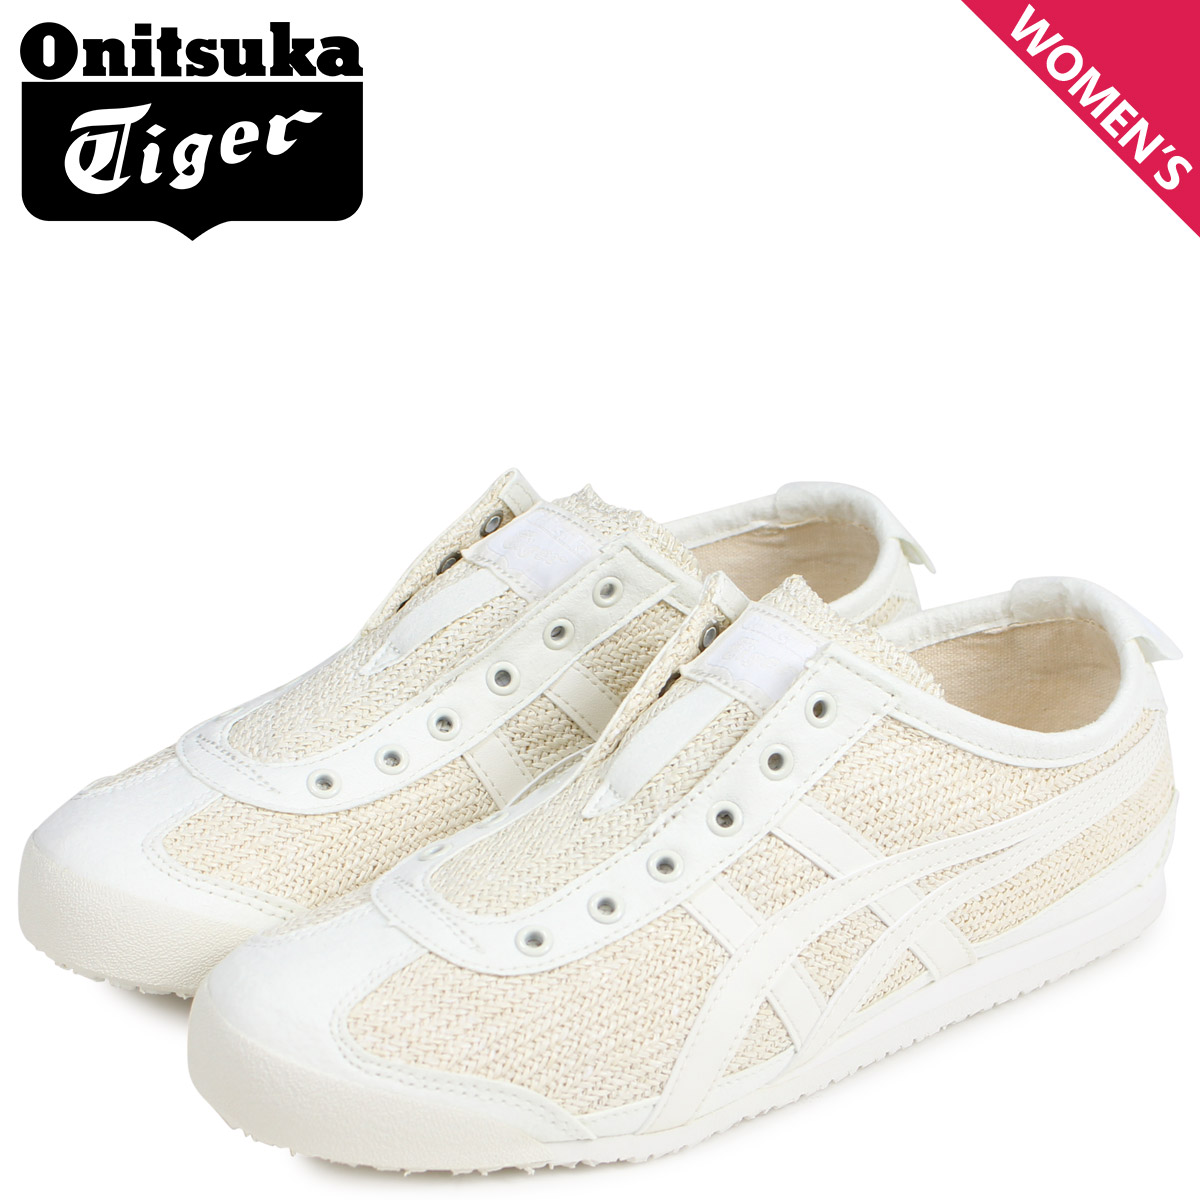 more photos 9ec66 54330 Onitsuka Tiger Onitsuka tiger Mexico 66 slip-ons sneakers Lady's MEXICO 66  SLIP-ON off-white white 1182A046-101